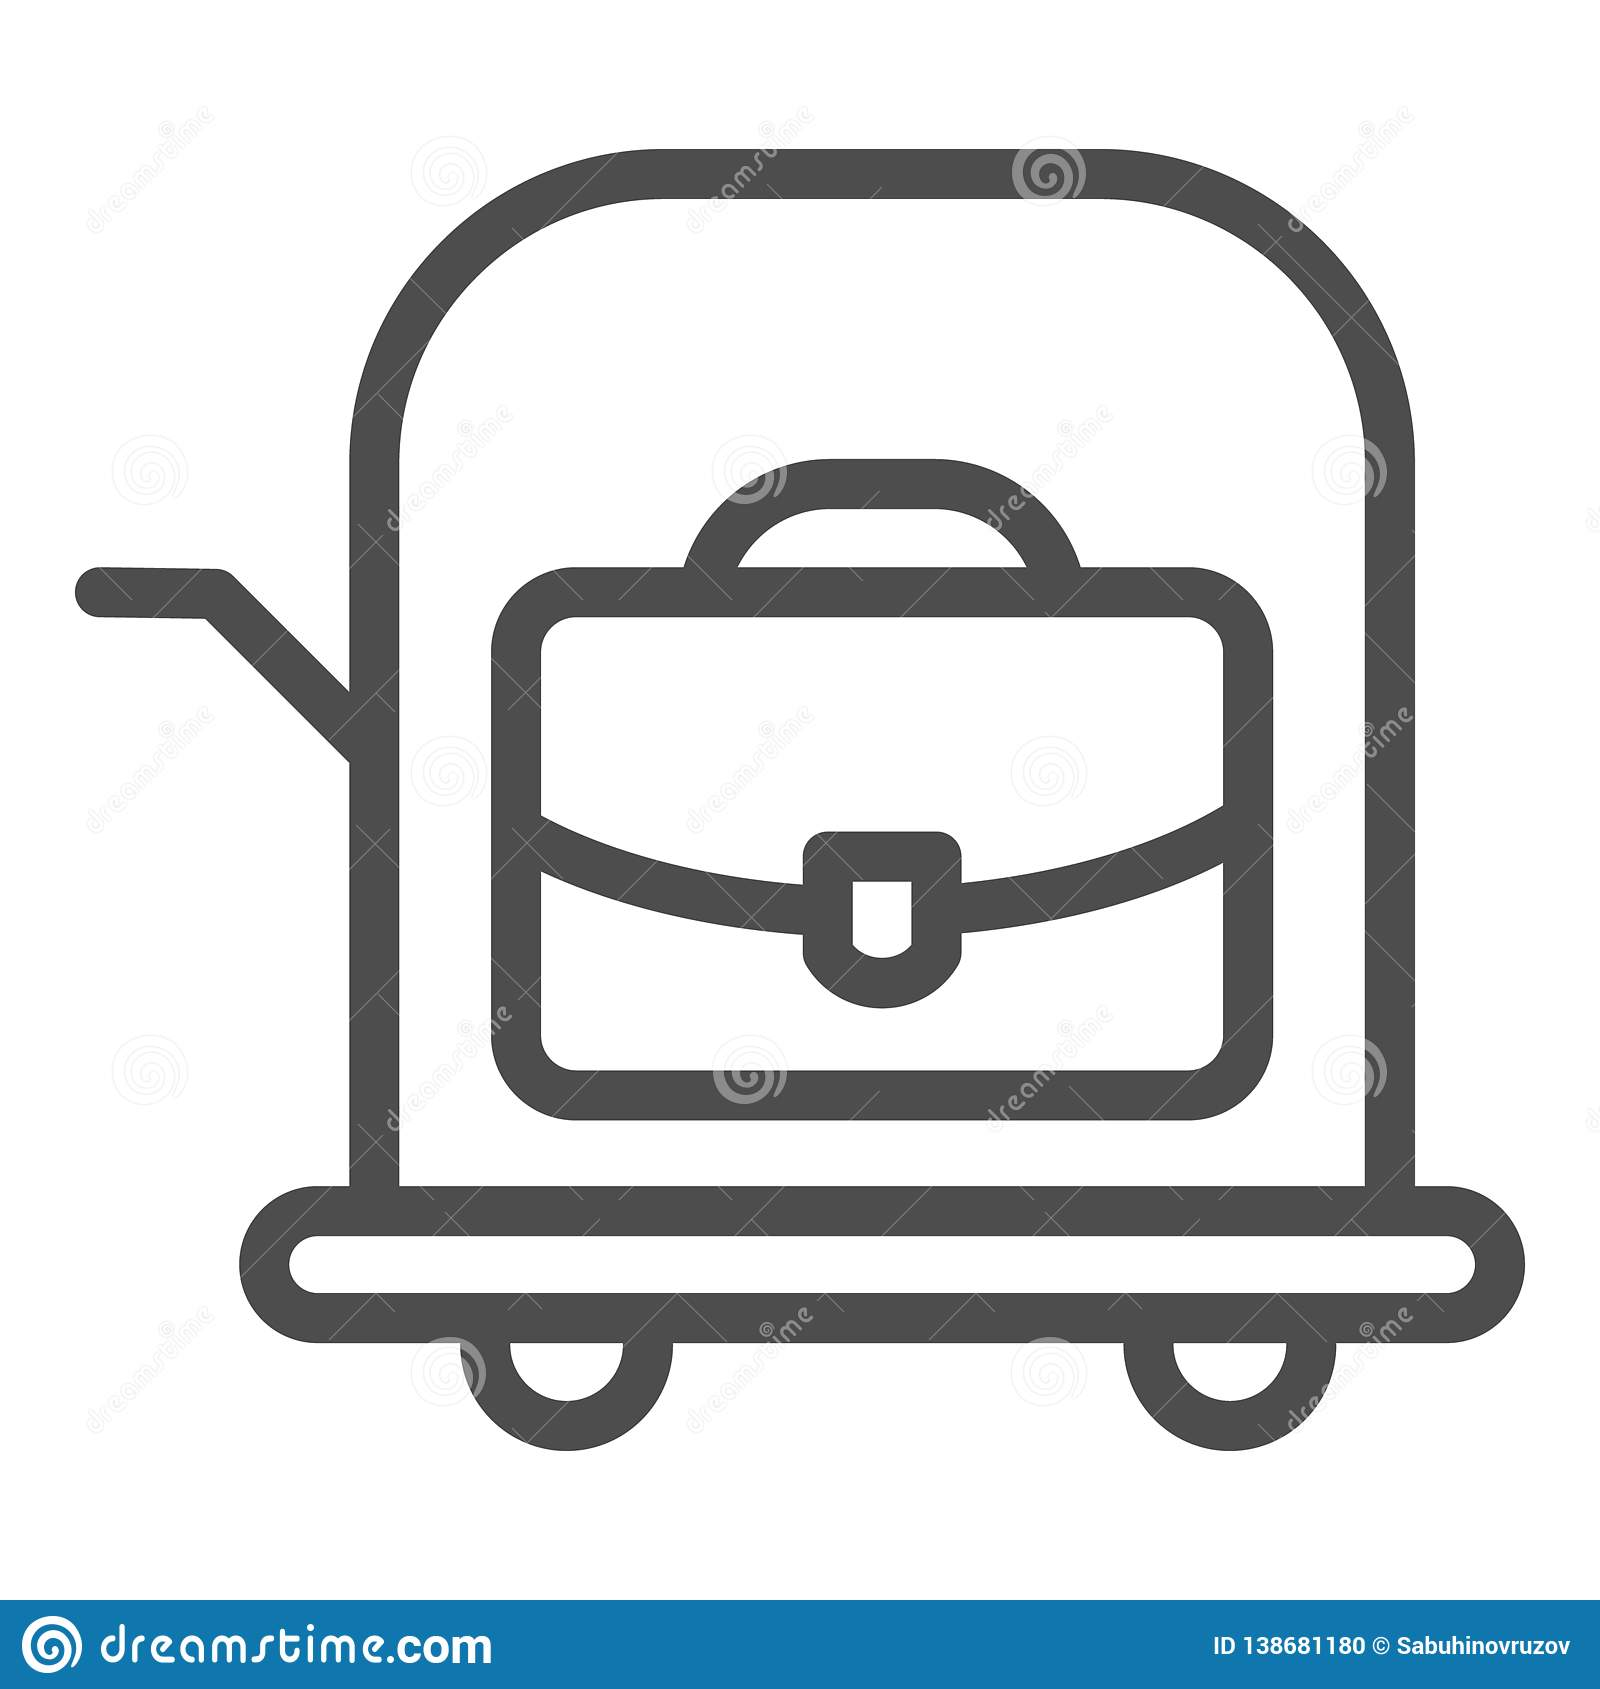 Bag on trolley line icon. Luggage cart vector illustration isolated on white. Suitcase on cart outline style design